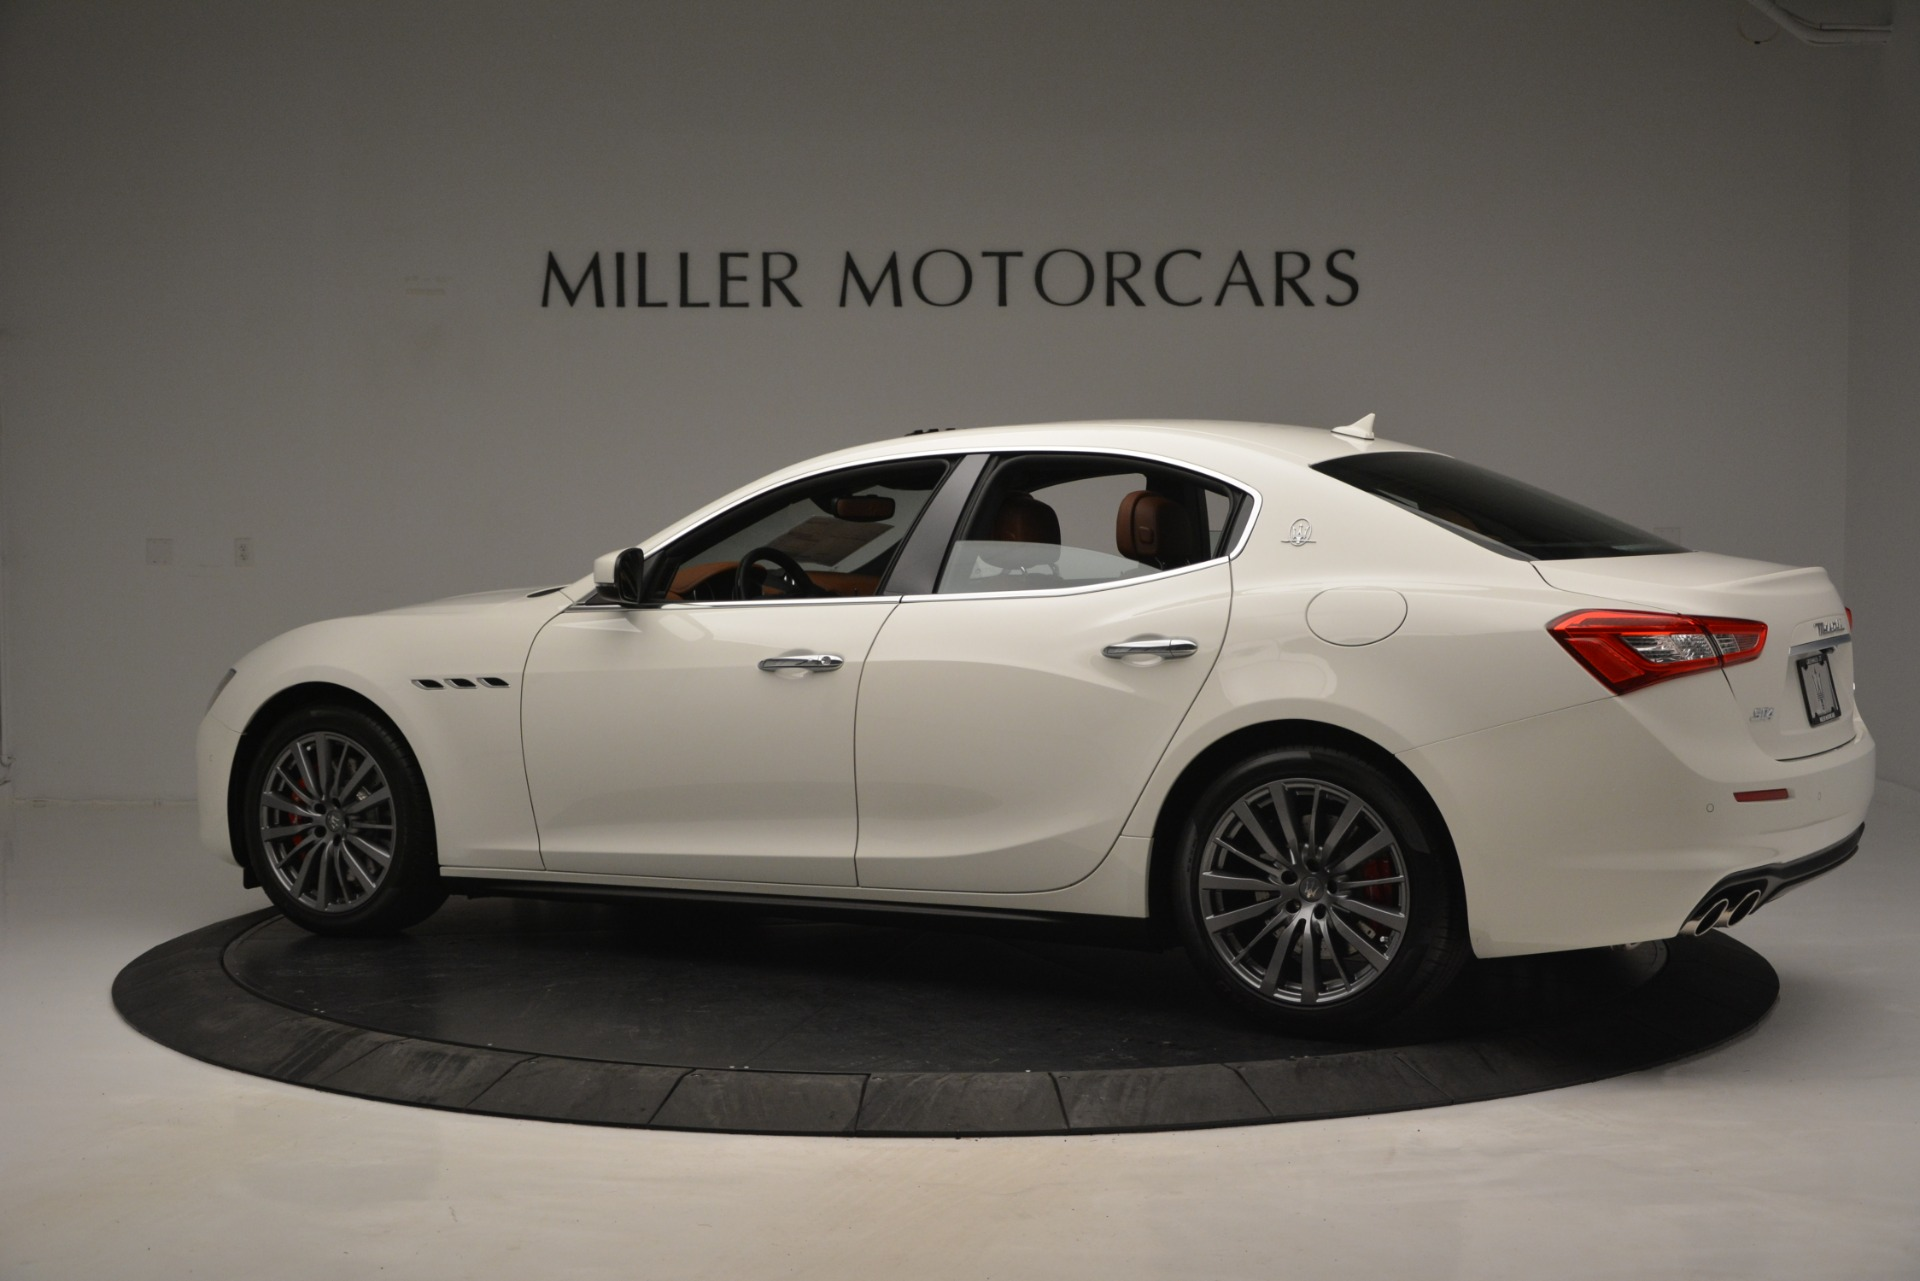 New 2019 Maserati Ghibli S Q4 For Sale In Greenwich, CT. Alfa Romeo of Greenwich, M2245 2795_p5